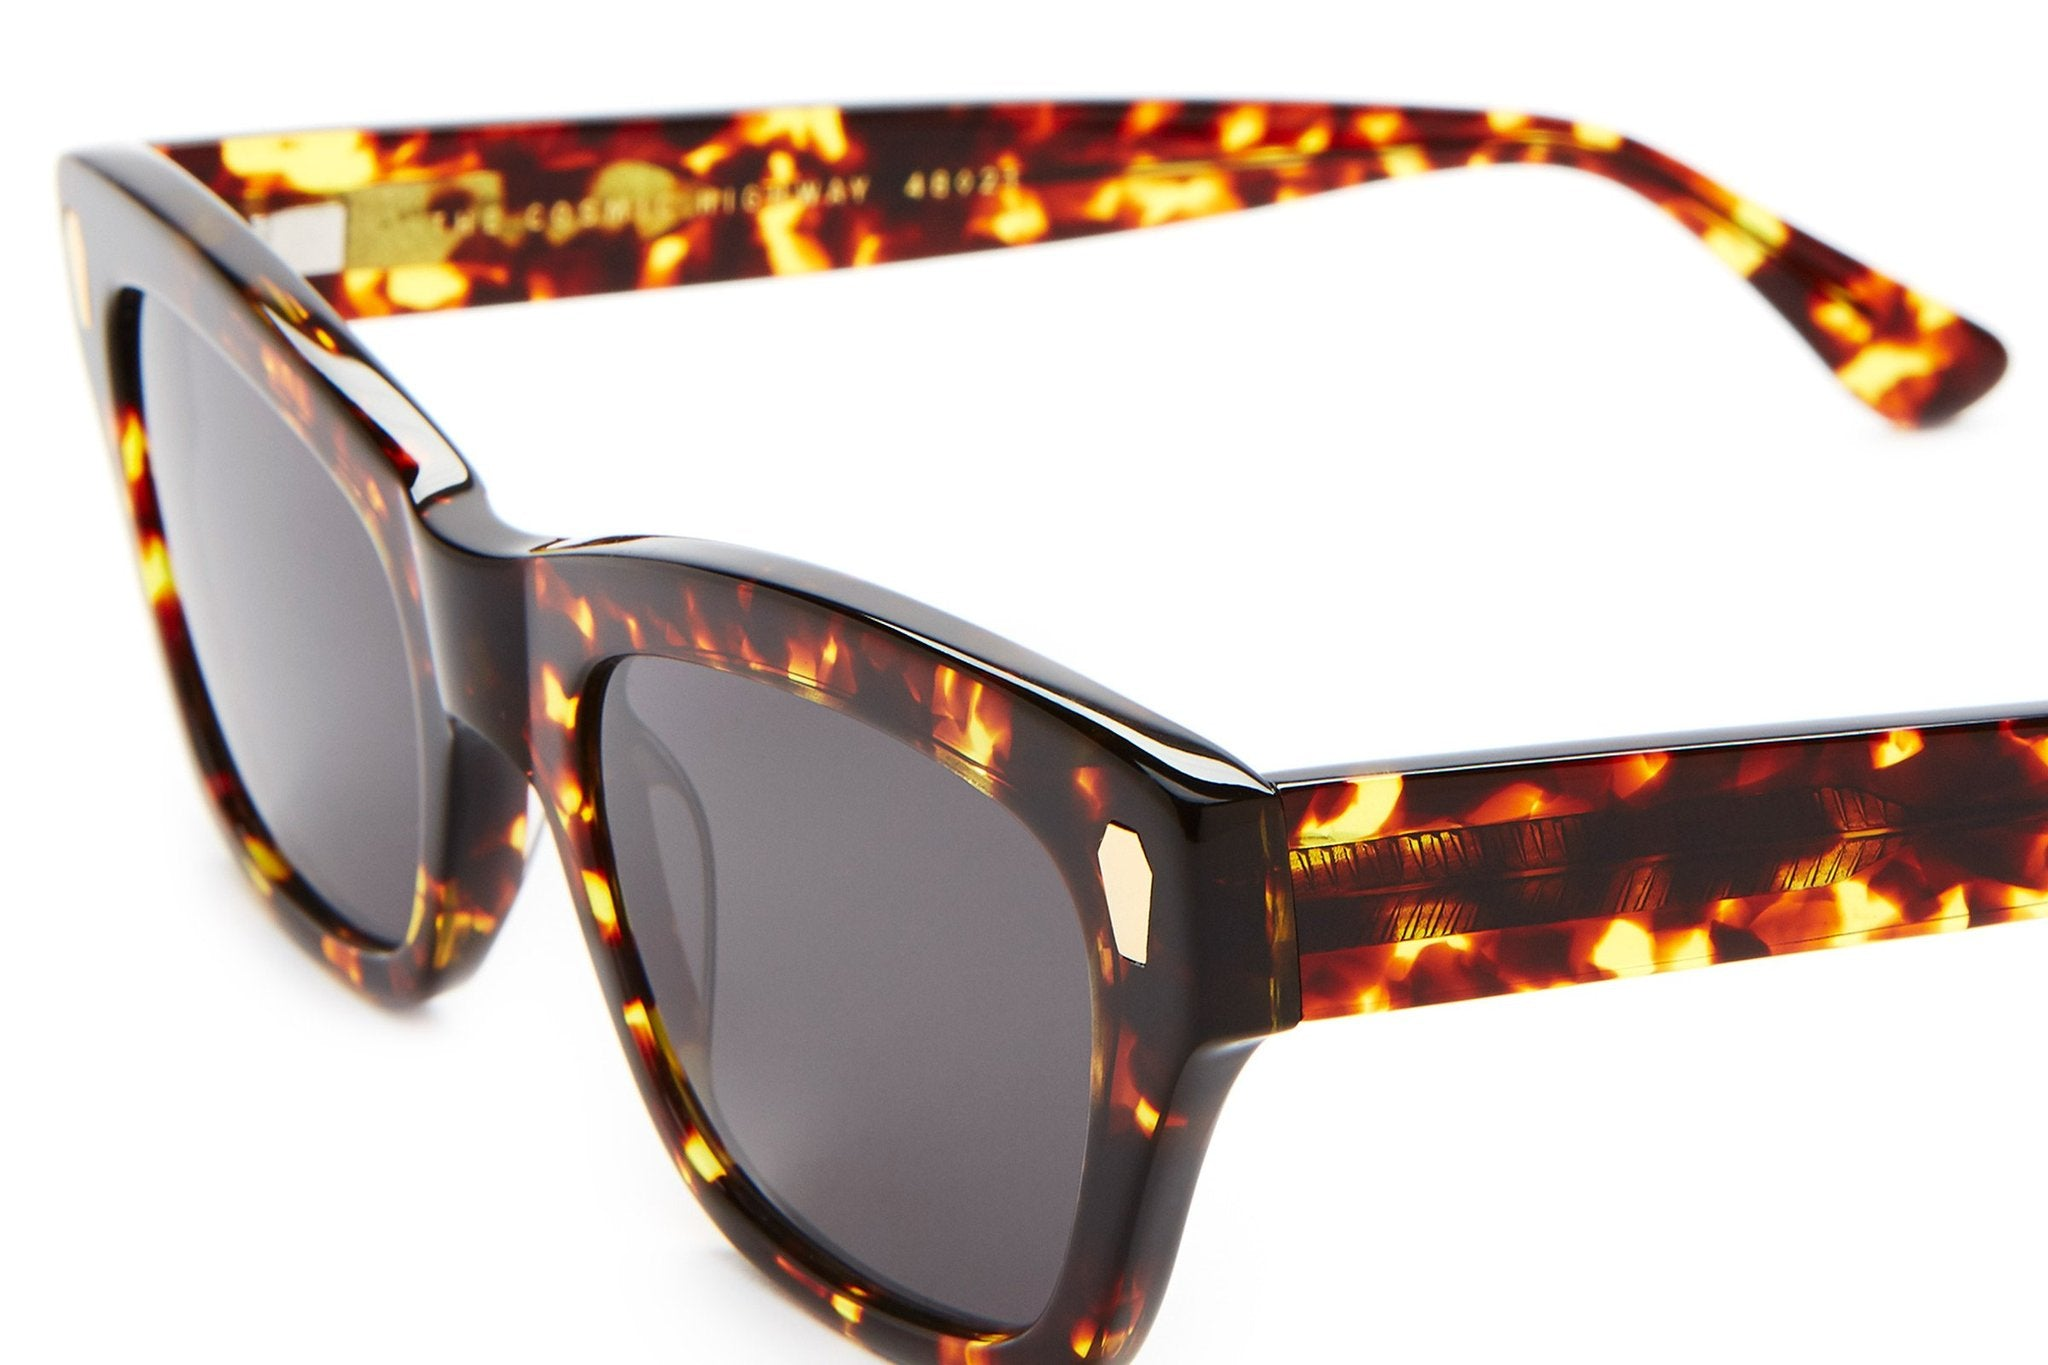 THE COSMIC HIGHWAY / DARK TORTOISE & POLARISED LENS